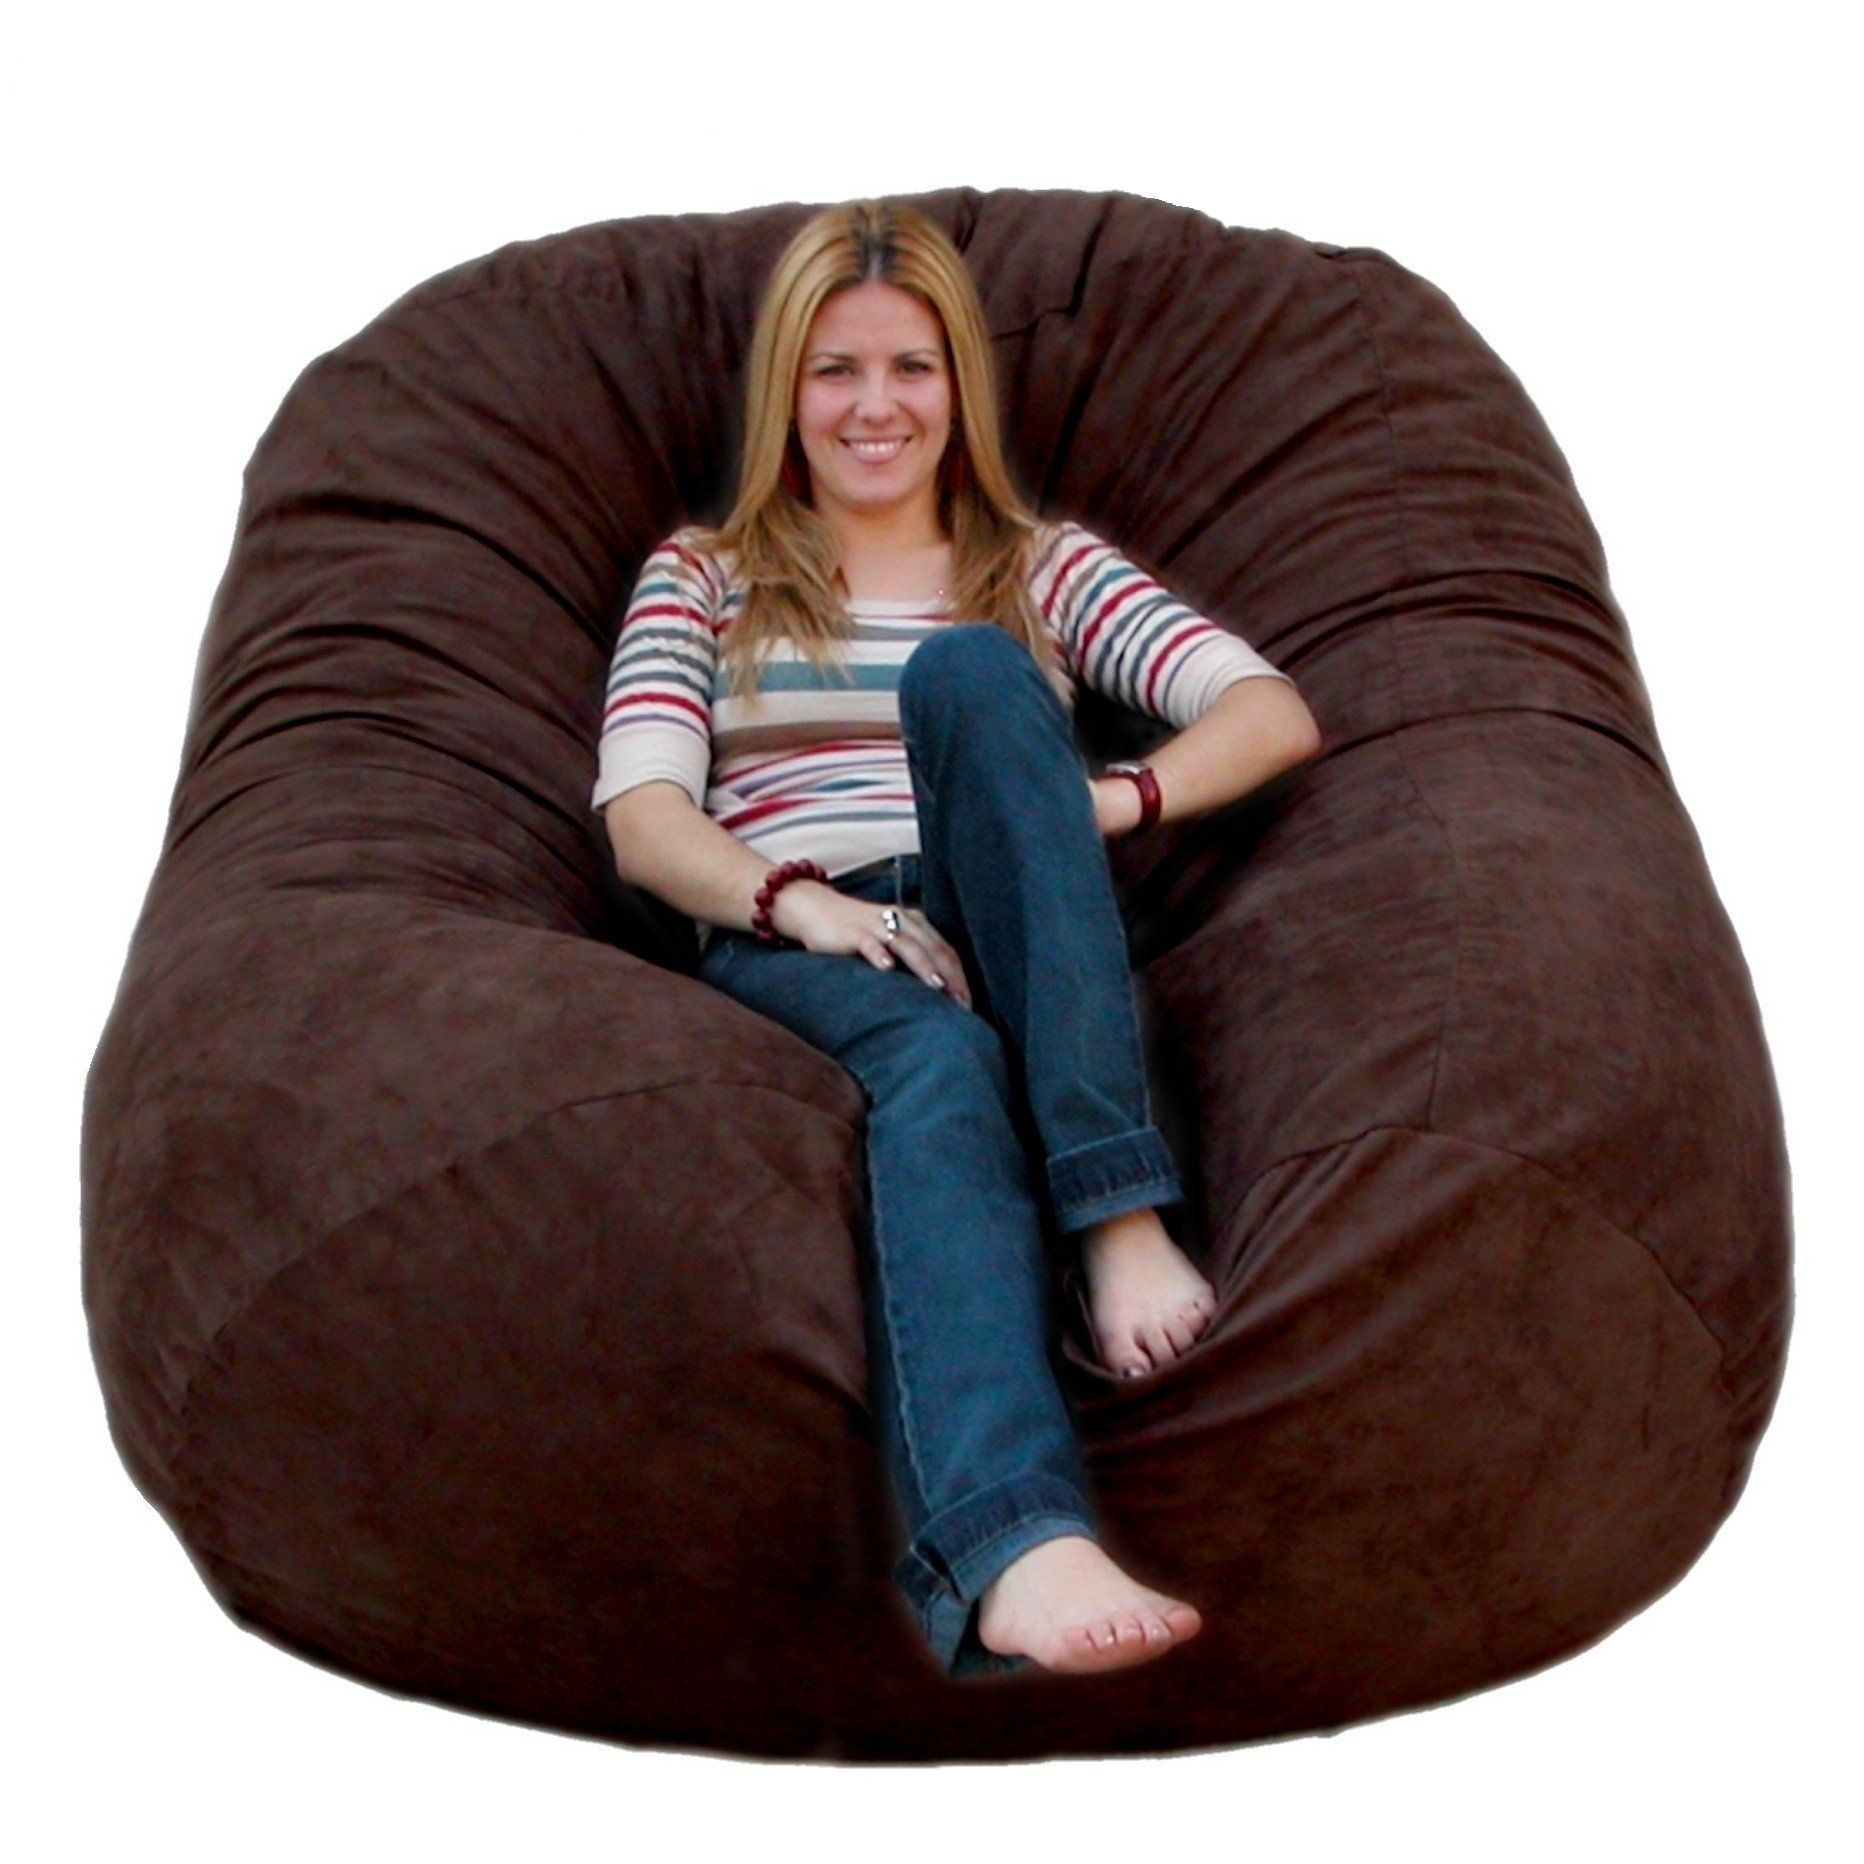 Cozy Sack 6 Feet Bean Bag Chair Large Chocolate